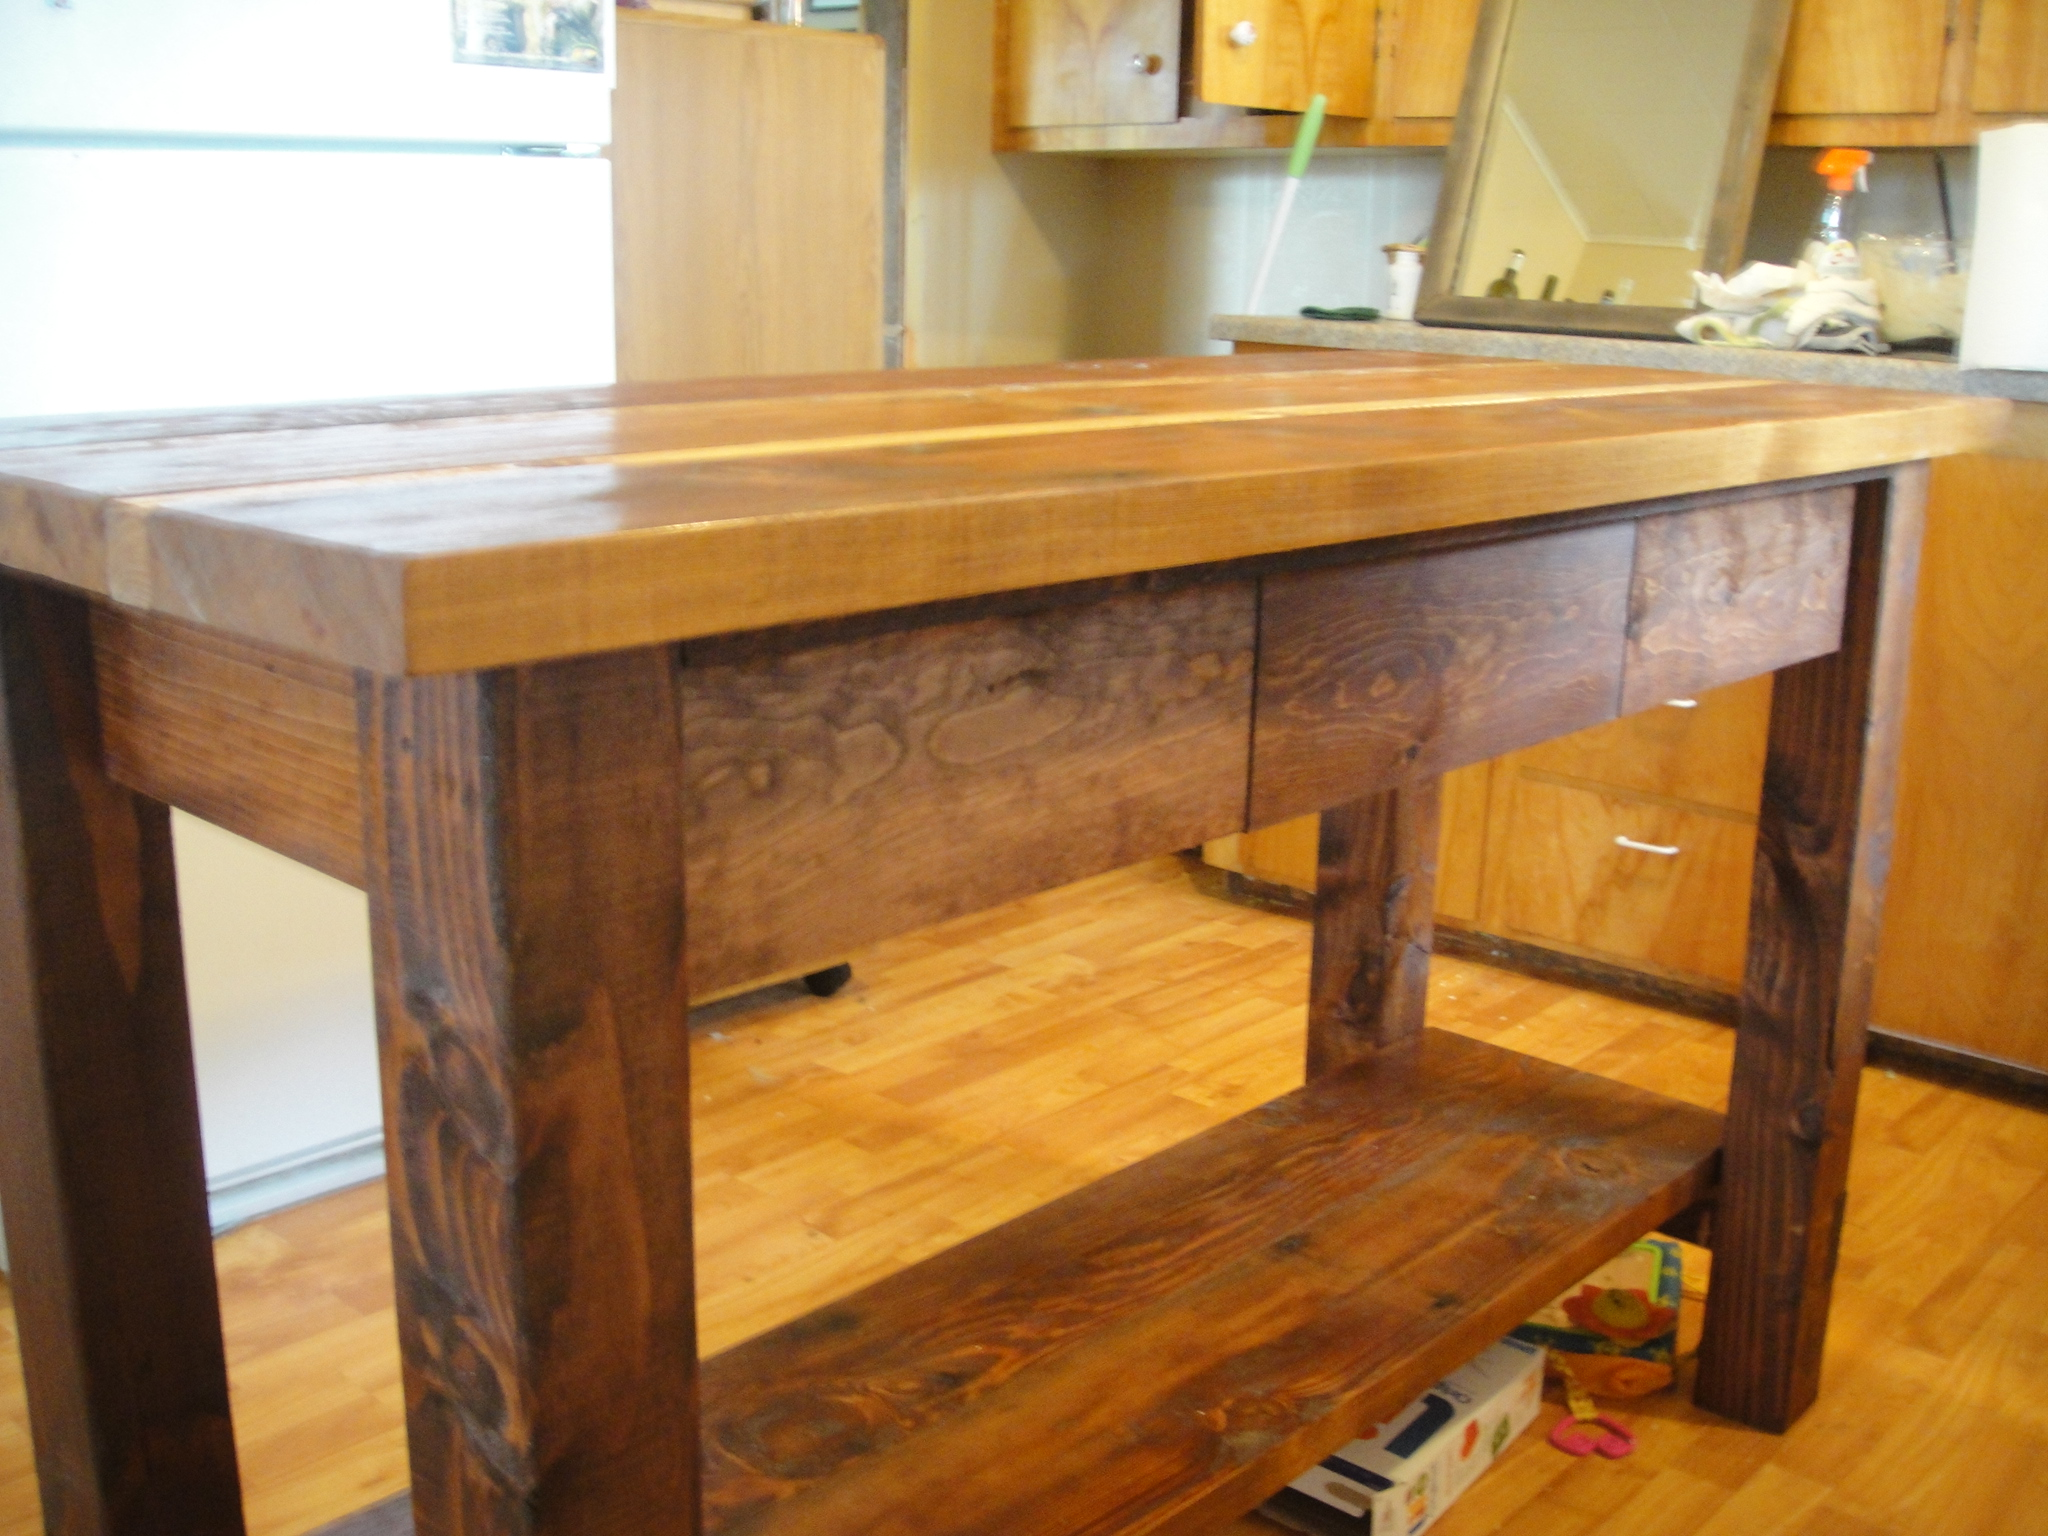 Charmant Kitchen Island From Reclaimed Wood